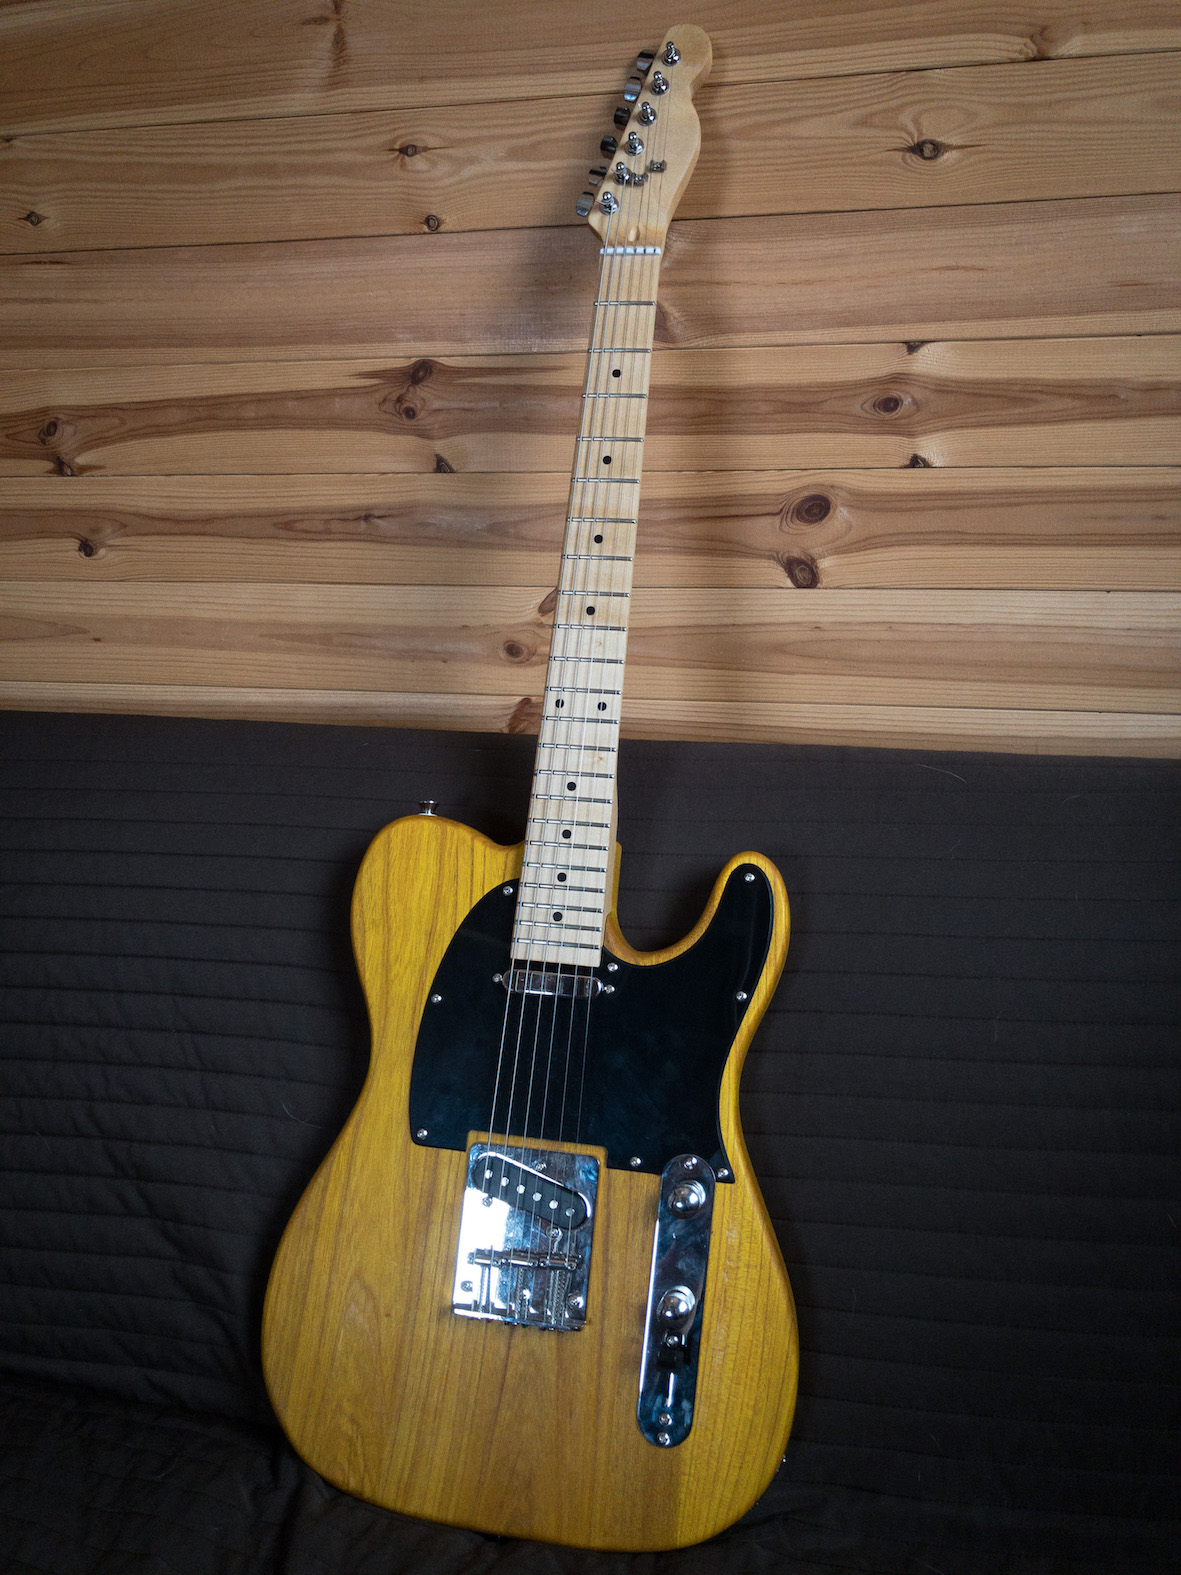 Telecaster Love Thread, No Archtops Allowed-apc_2298-jpg